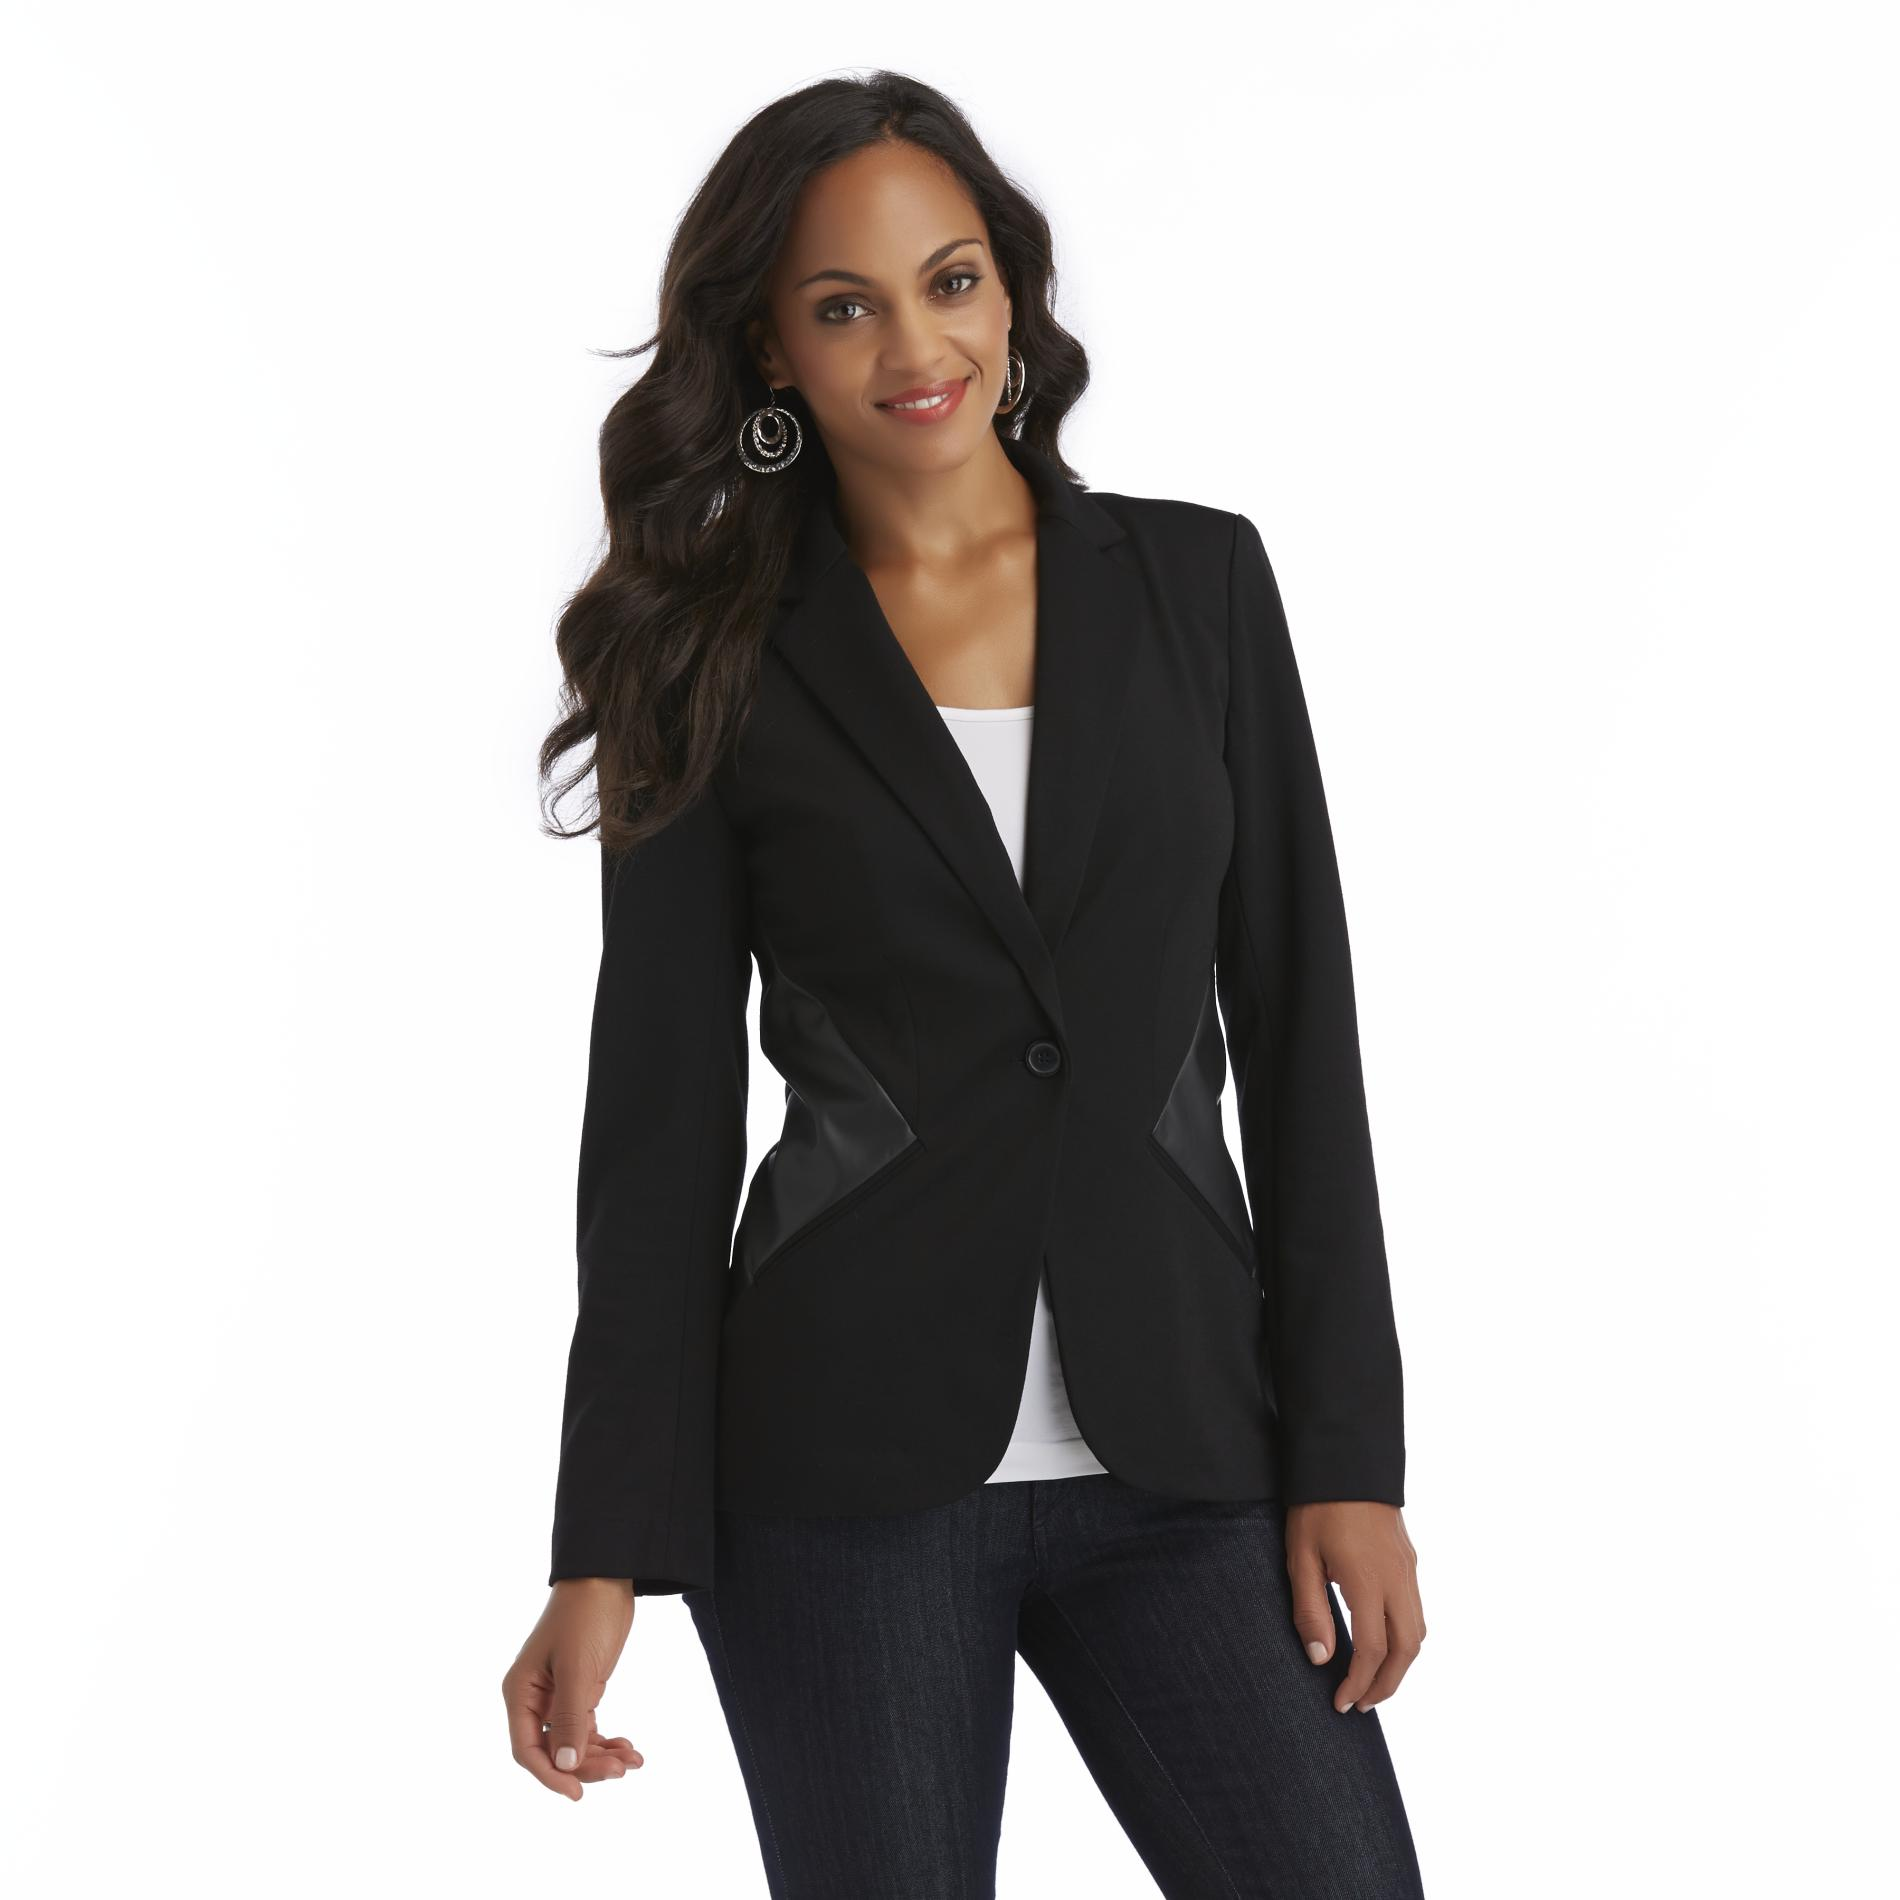 Sofia by Sofia Vergara Women's Embellished Blazer at Kmart.com